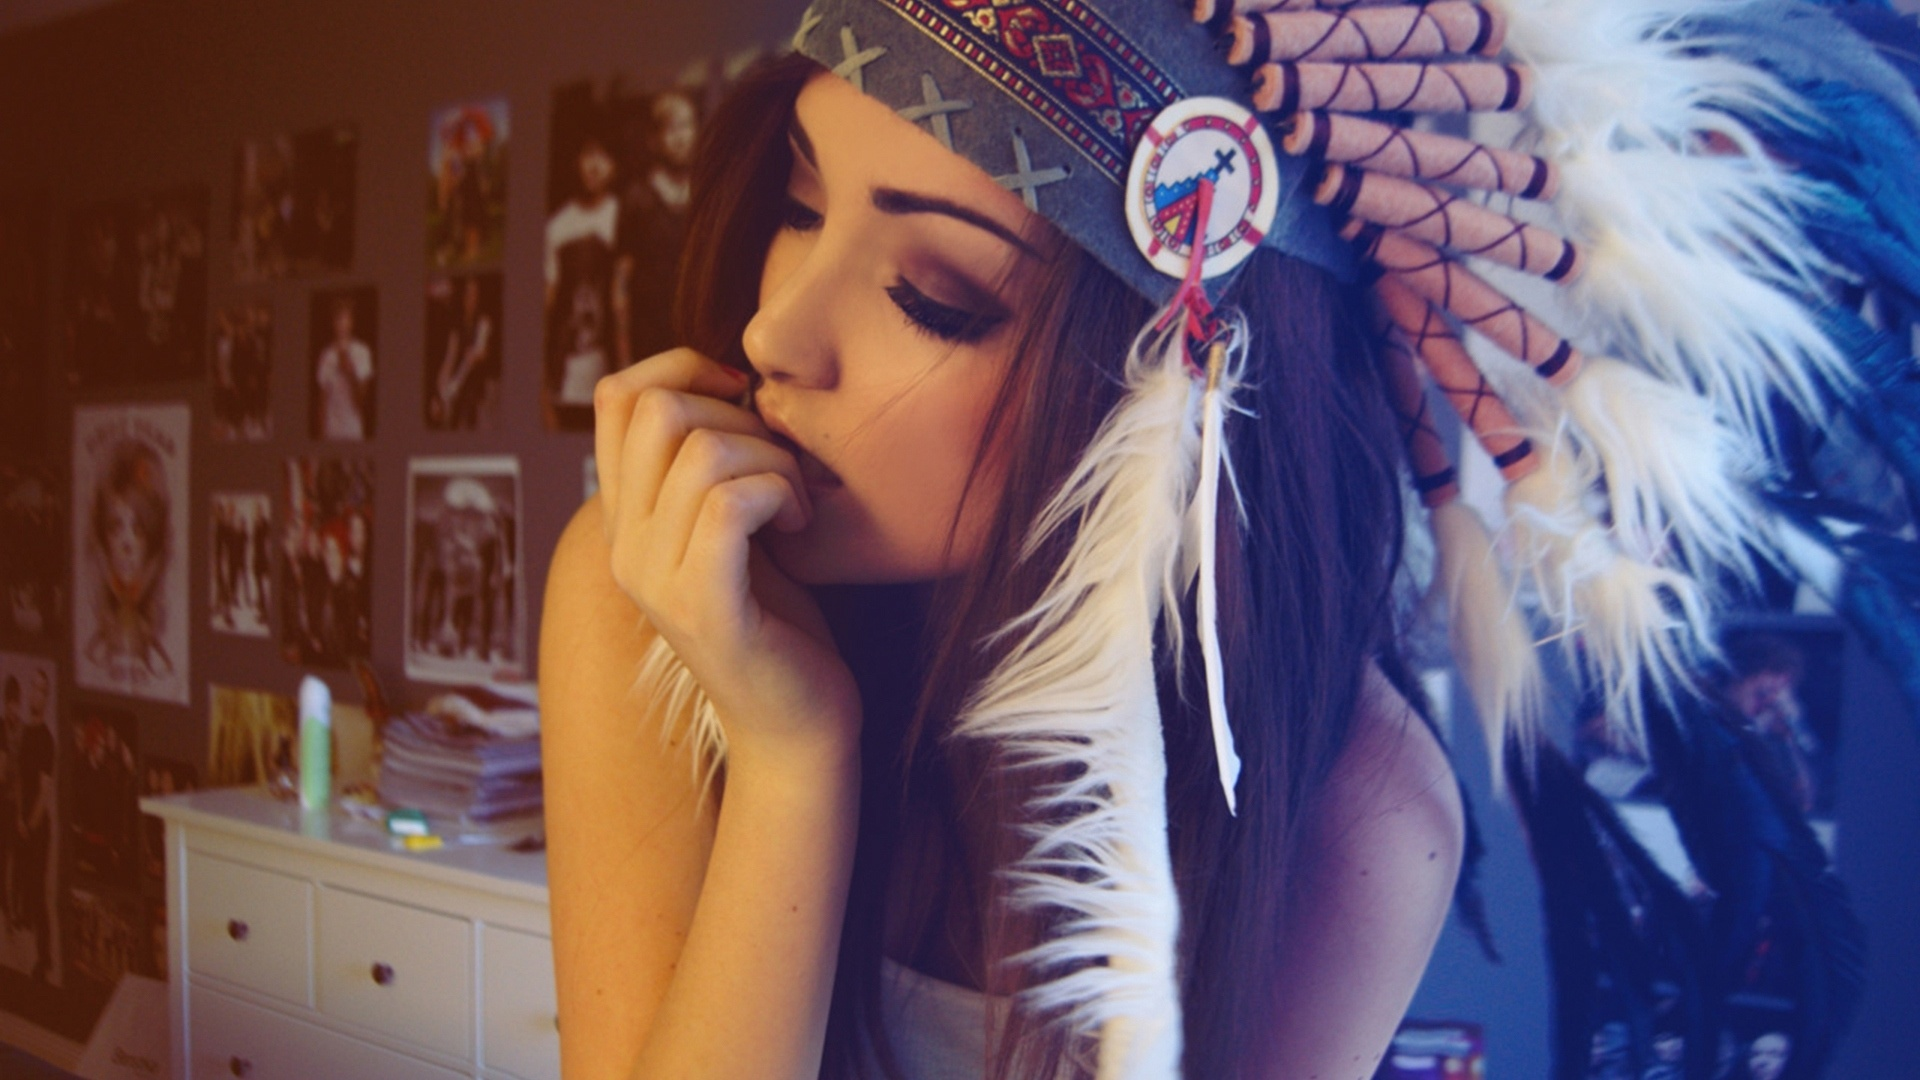 Wearing red indian colorful feathers hat   High Definition Wallpapers 1920x1080